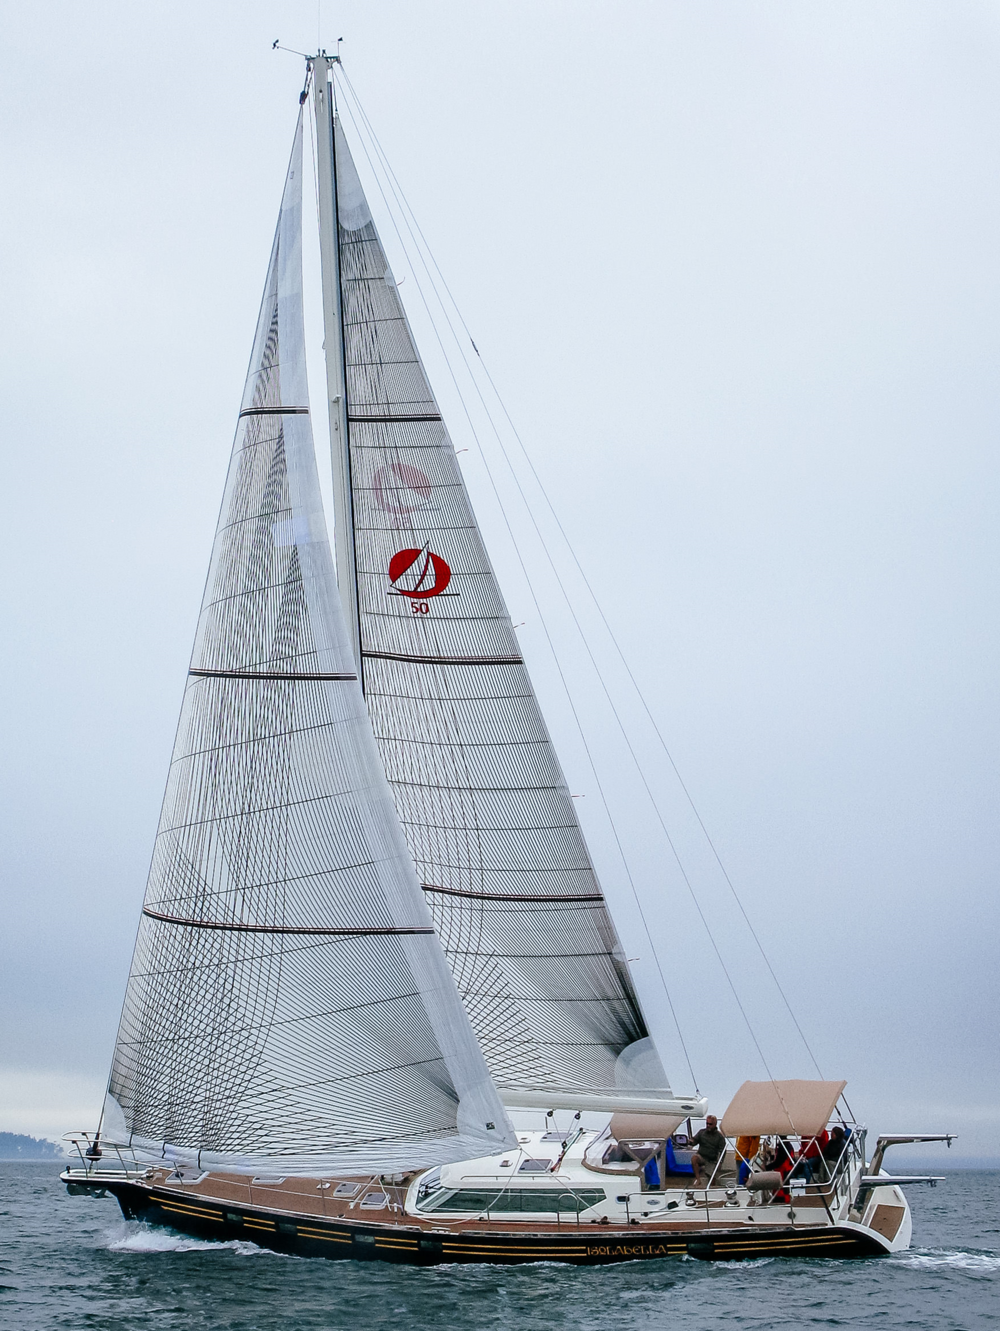 A Waterline Yachts 50 with Tape-Drive carbon Spectra performance cruising roller-reefing genoa and mainsail. Notice the 3 reef points that include sets of tapes to carry the reefed luff  loads .